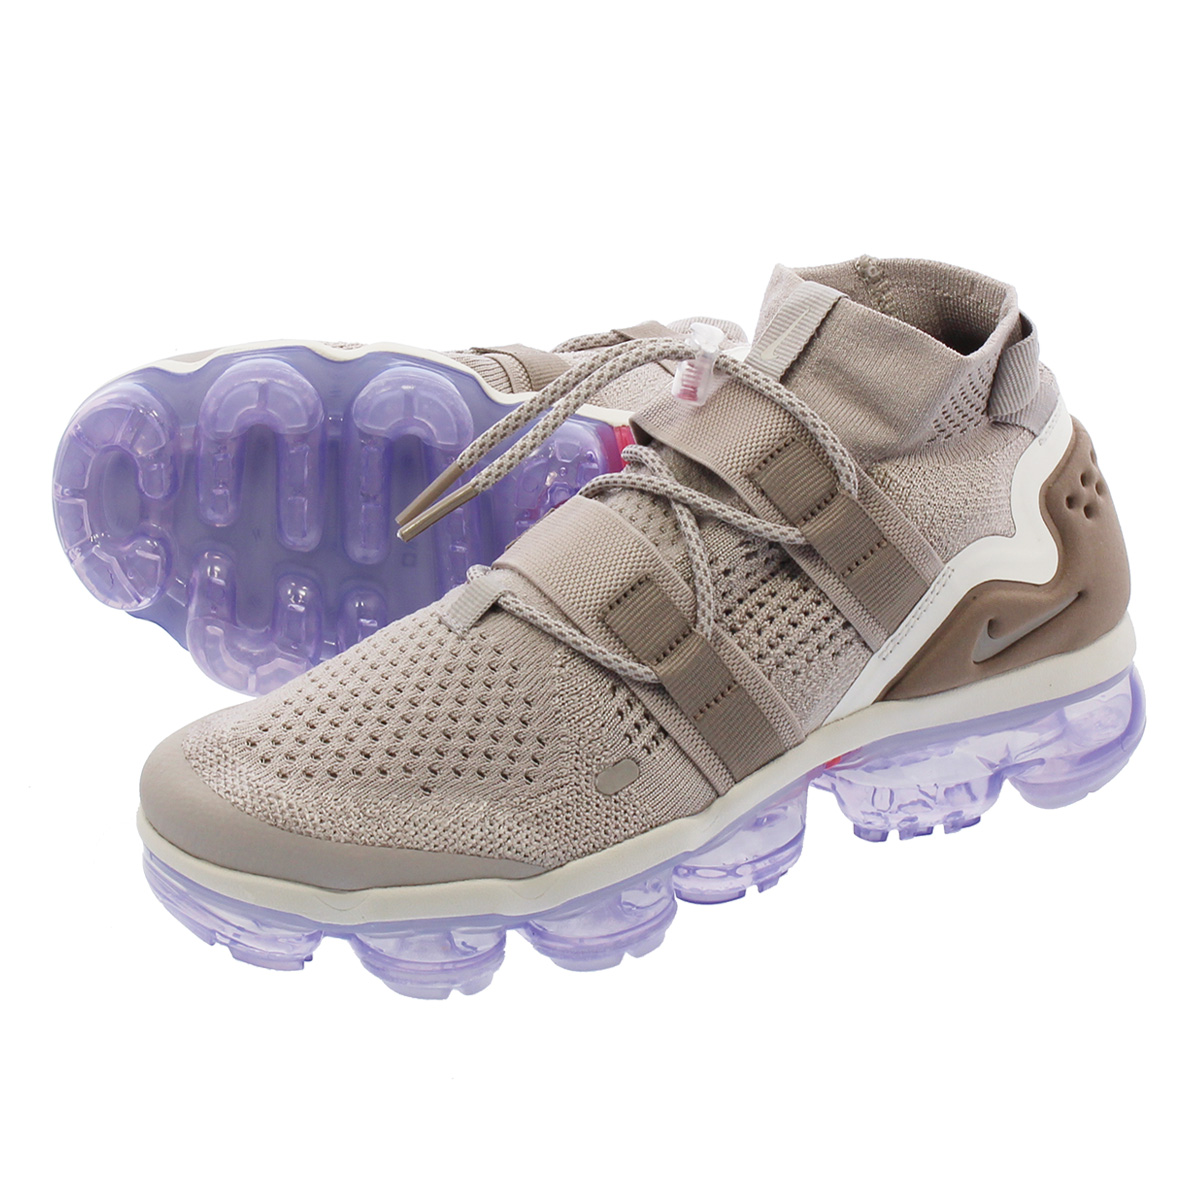 new style 84999 d478d LOWTEX PLUS: NIKE AIR VAPORMAX FLYKNIT UTILITY Nike vapor max fried food  knit utility MOON PARTICLE/PERSIAN VIOLET | Rakuten Global Market